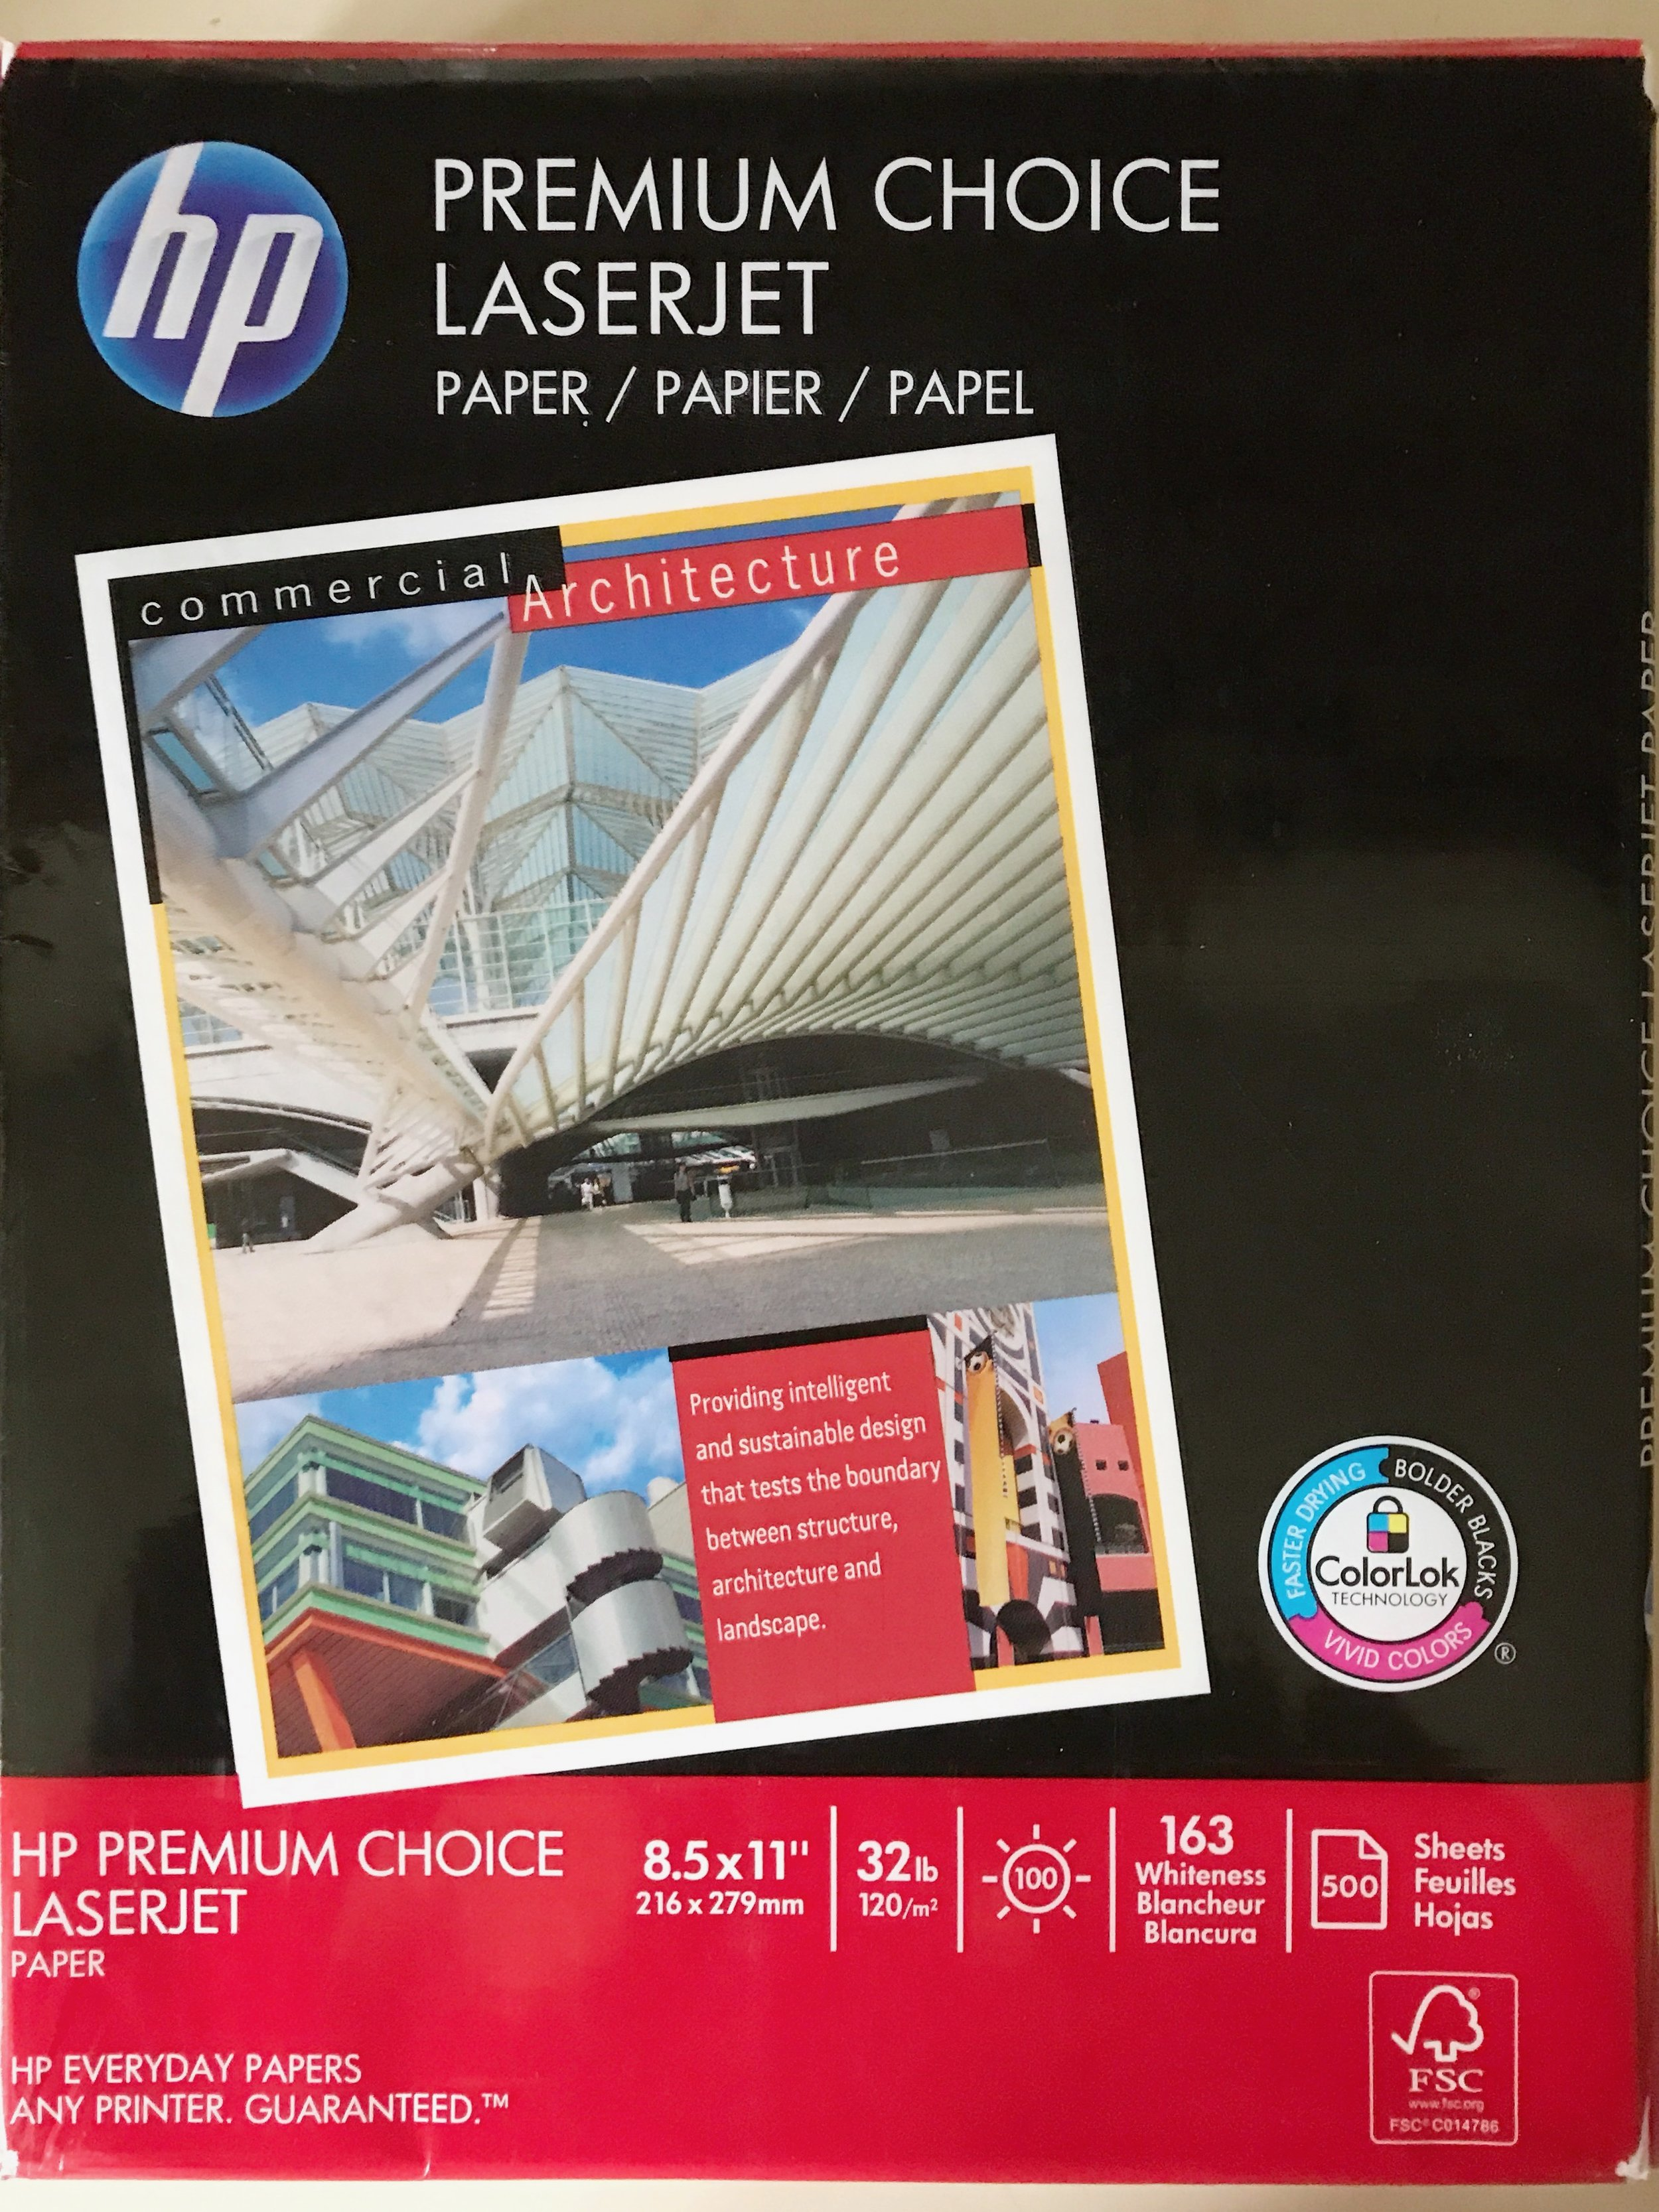 HP Laserjet32 - This paper can be found at amazon.com and at office supply stores.